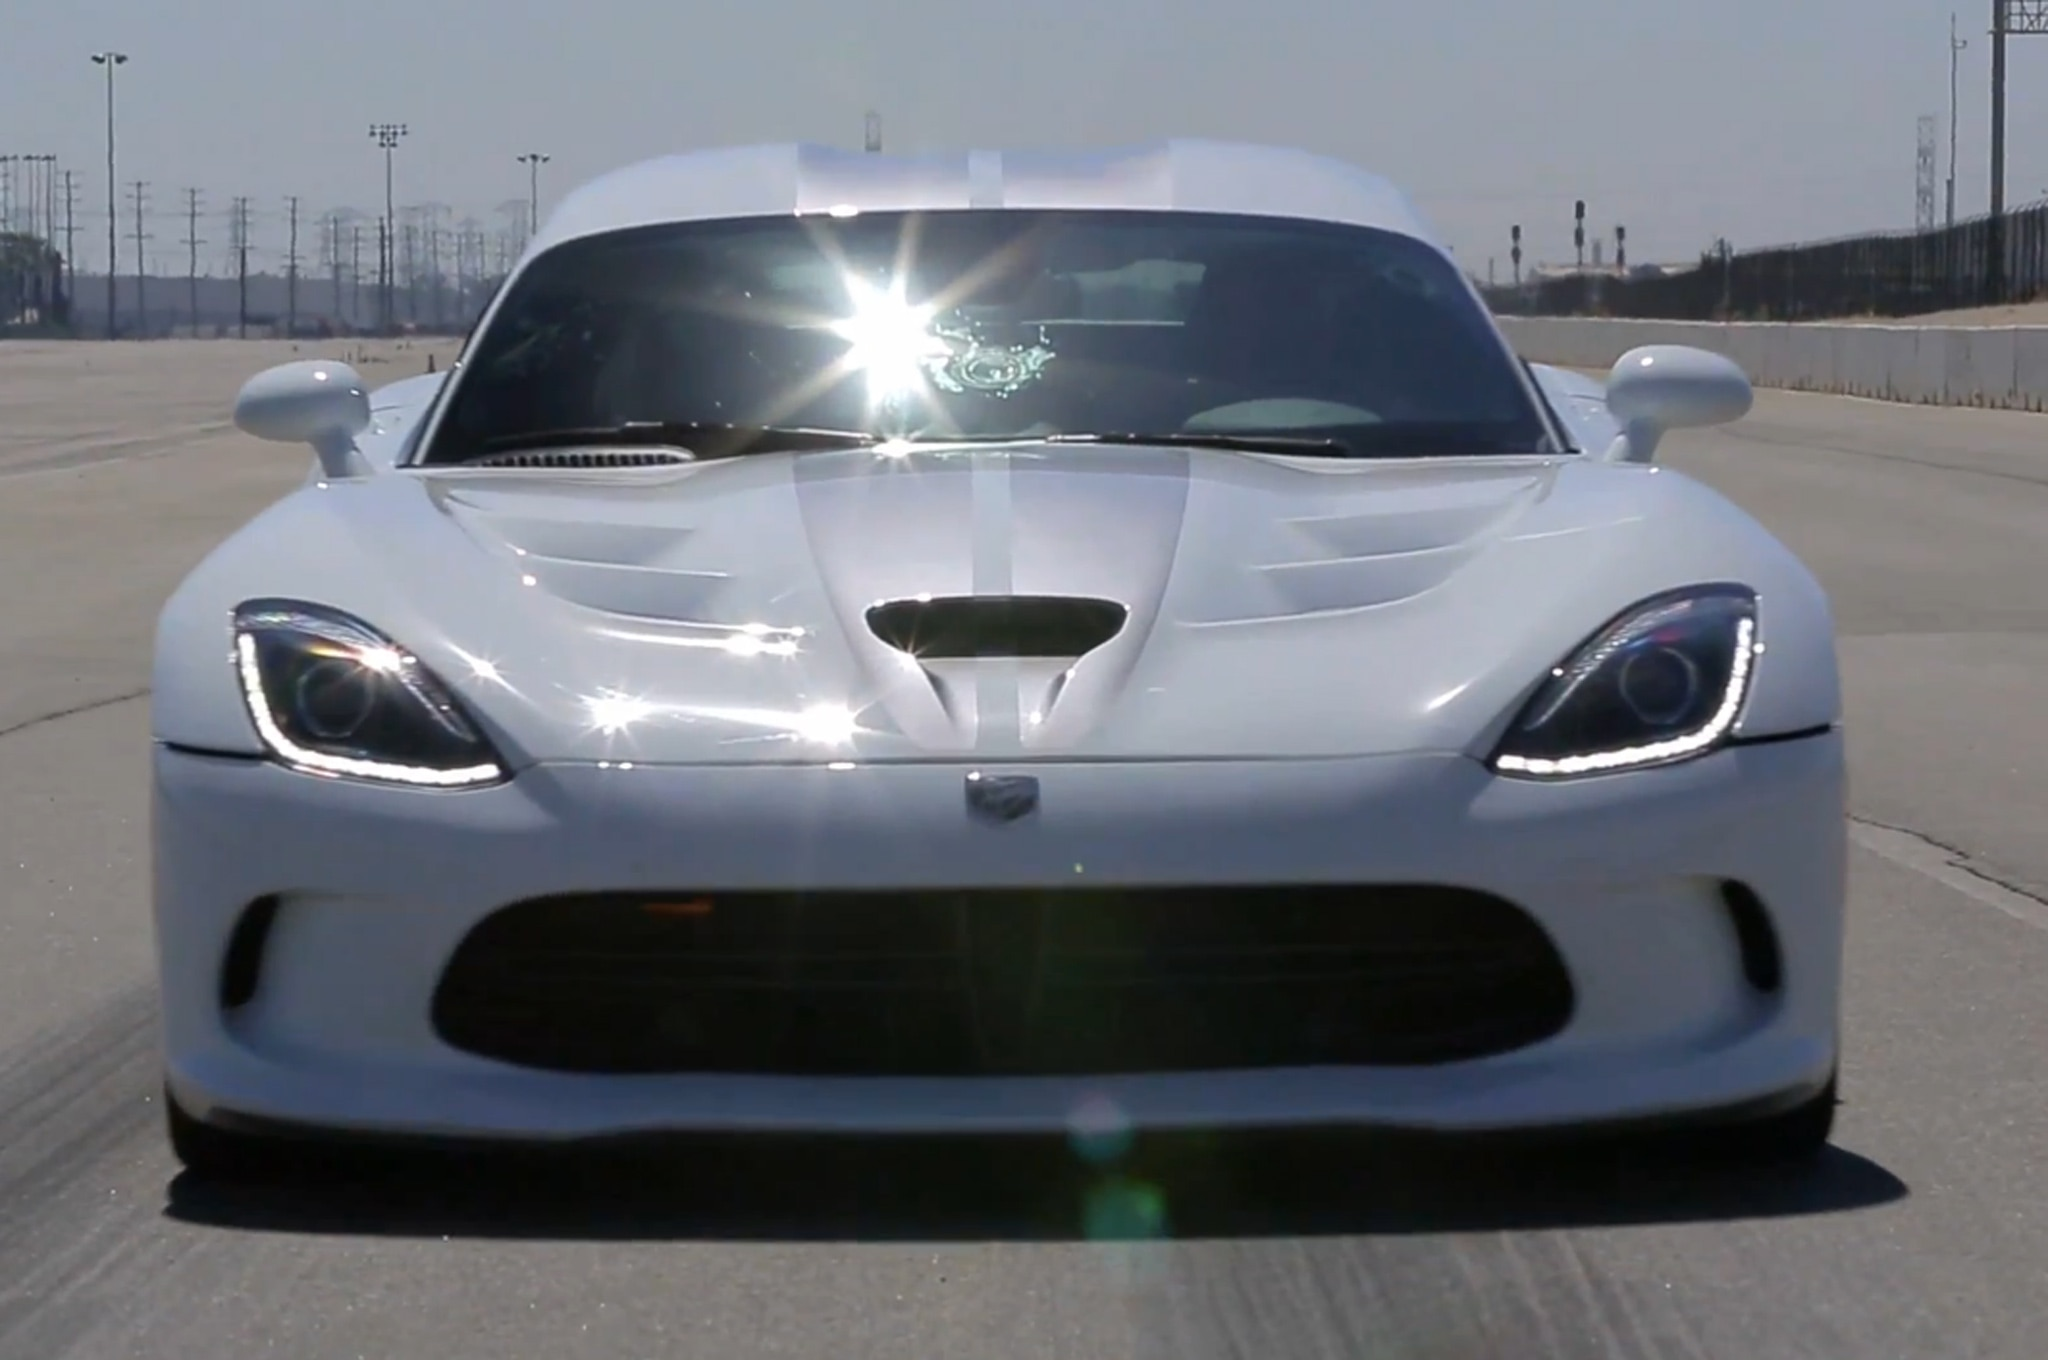 2013 SRT Viper Tested On J Turn Front View1